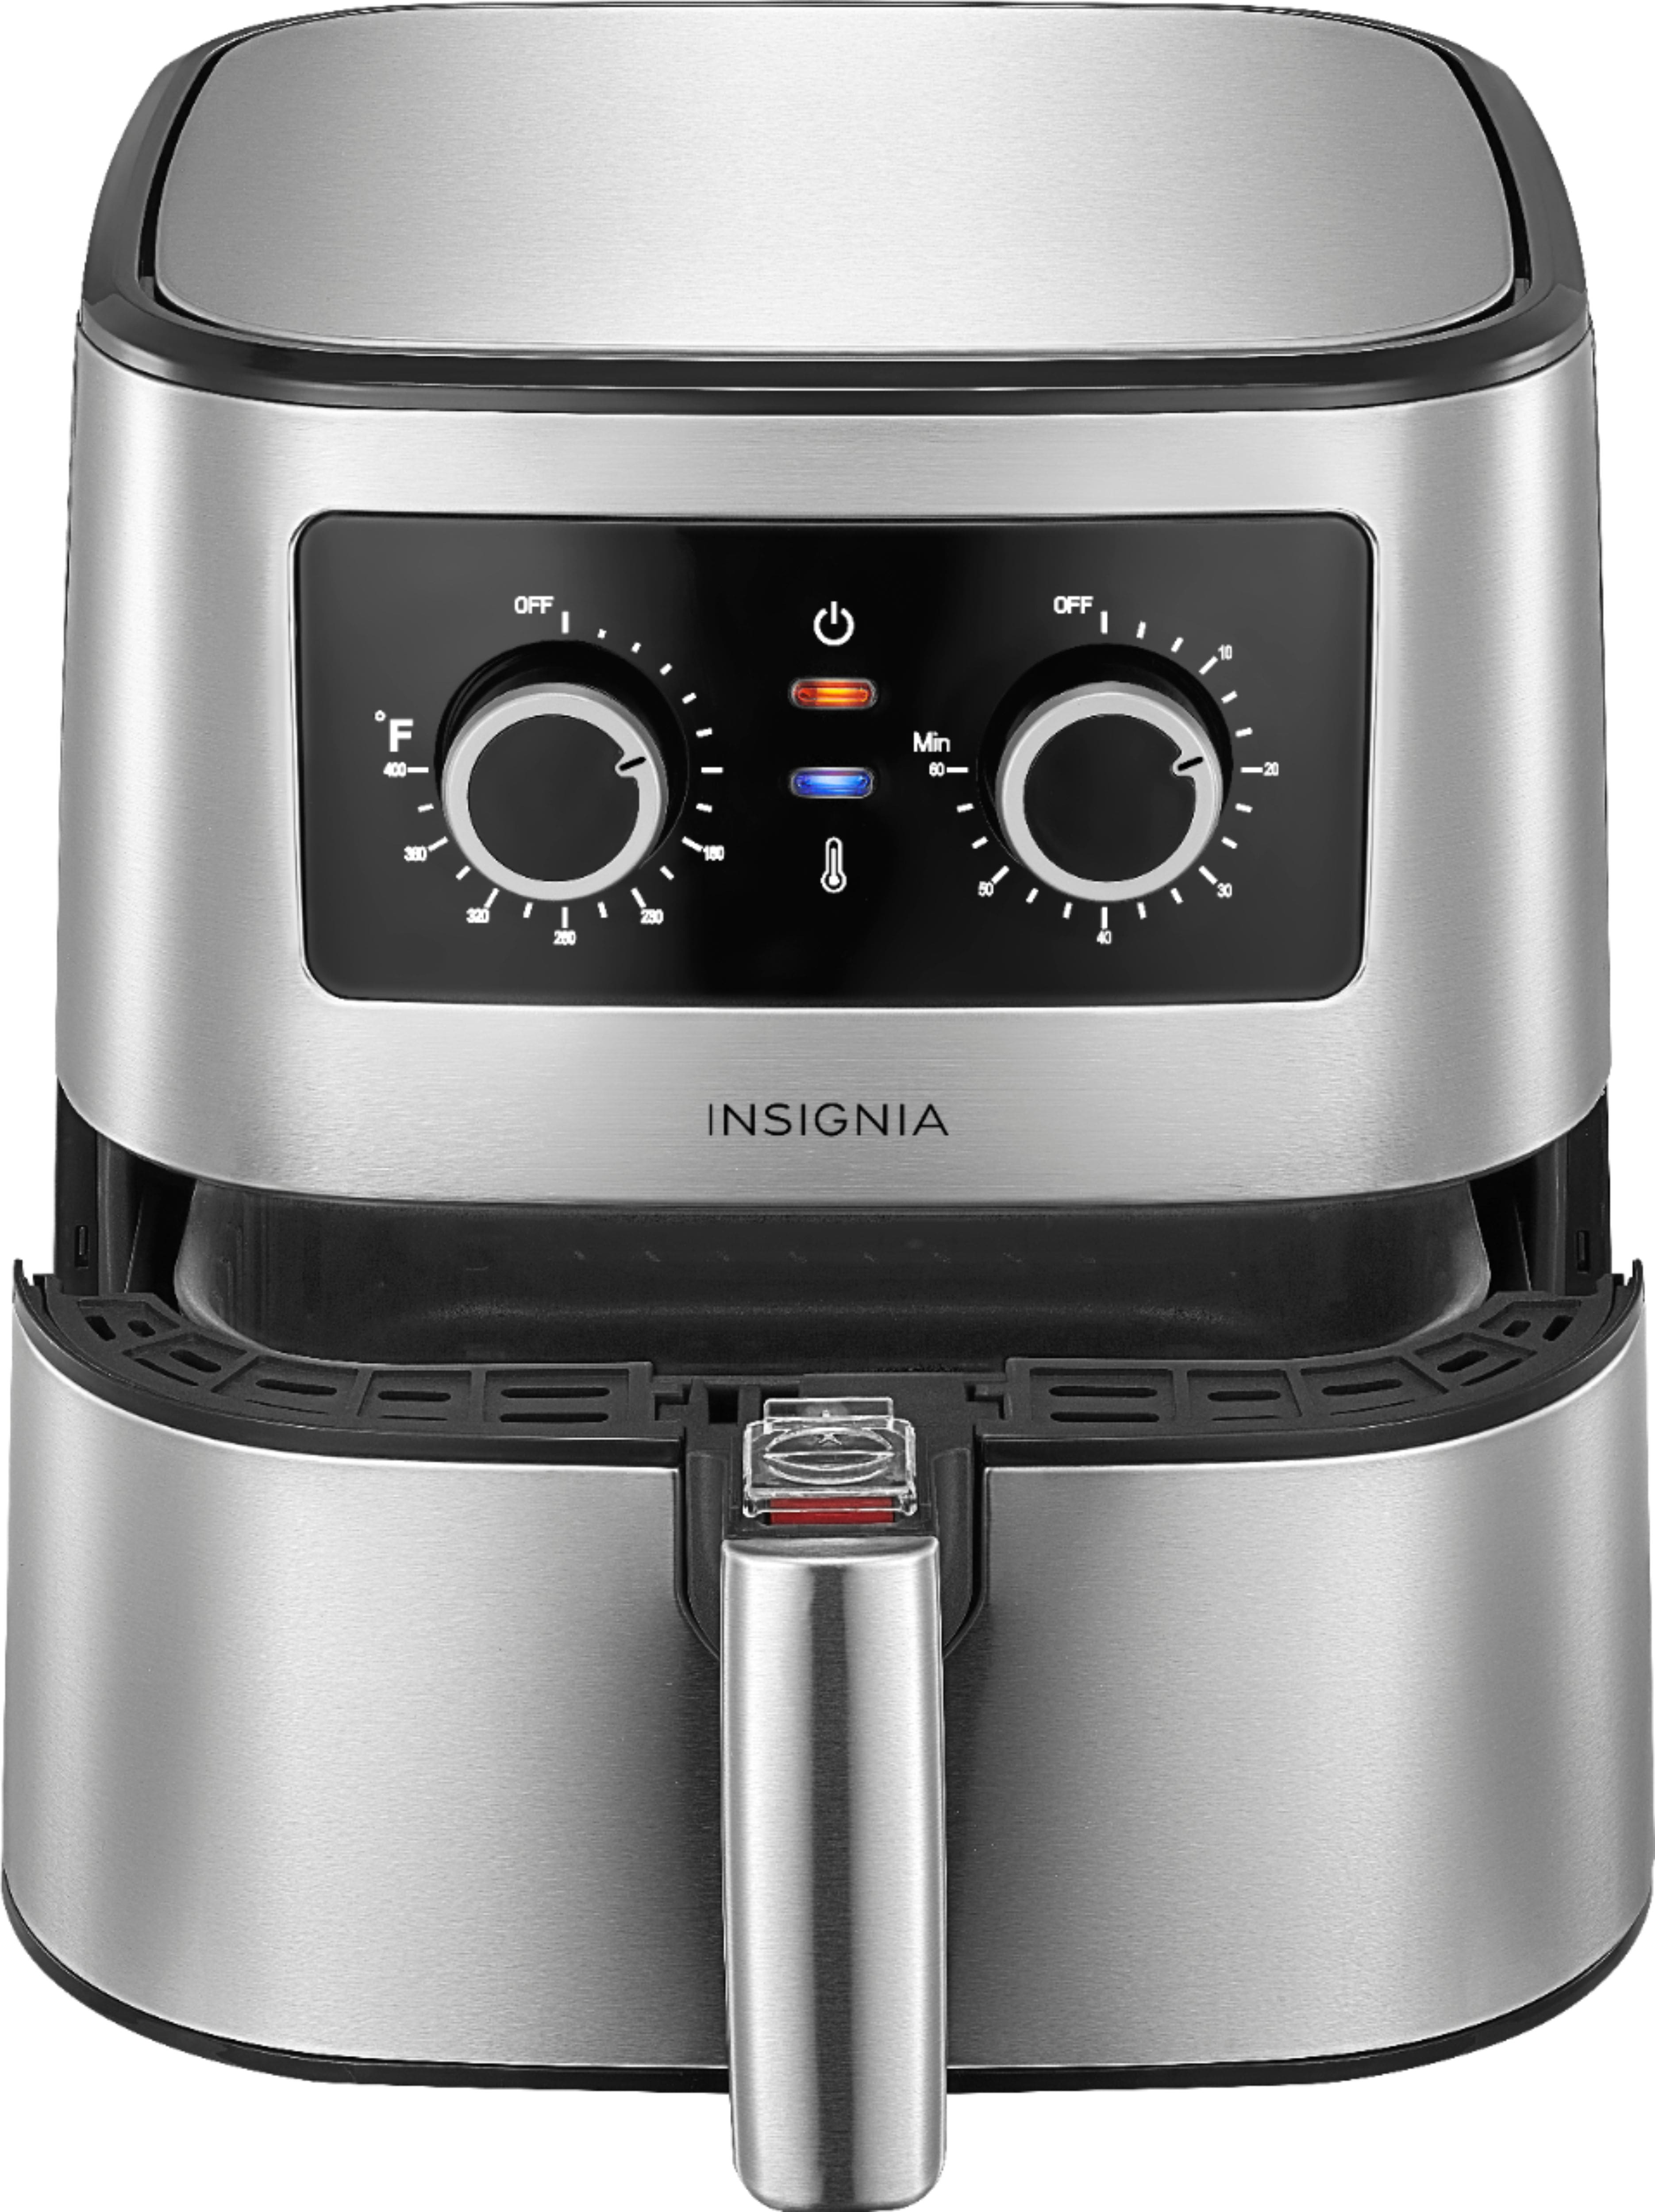 Insignia™ 5-qt. Analog Air Fryer Stainless Steel NS-AF53MSS0 - $39.99 with free shipping @ Best Buy - $39.99